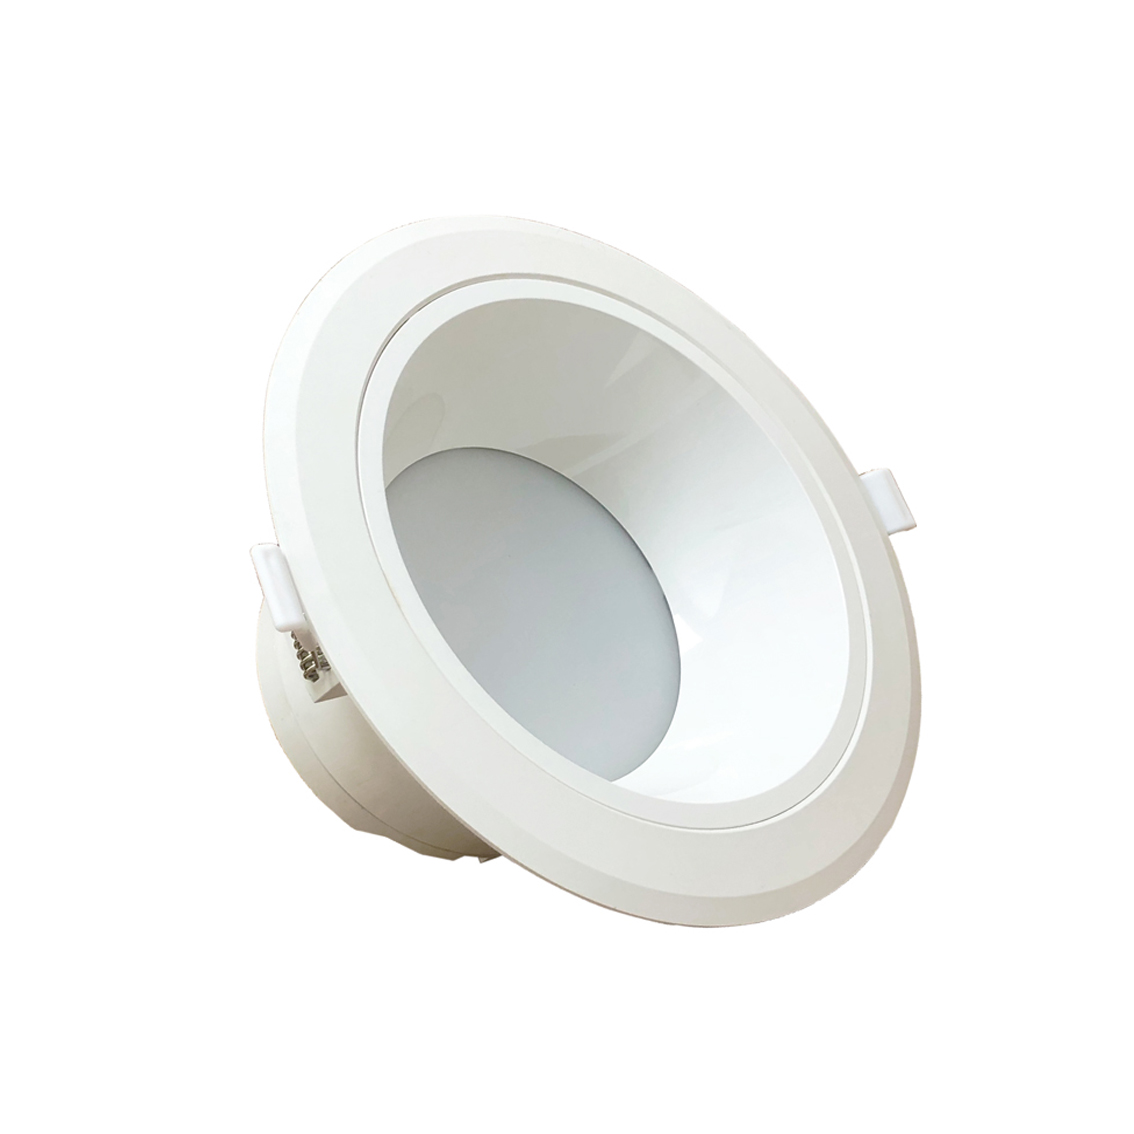 Spotlight Led downlight 30W round white driverless diameter 229mm Fi39-30W